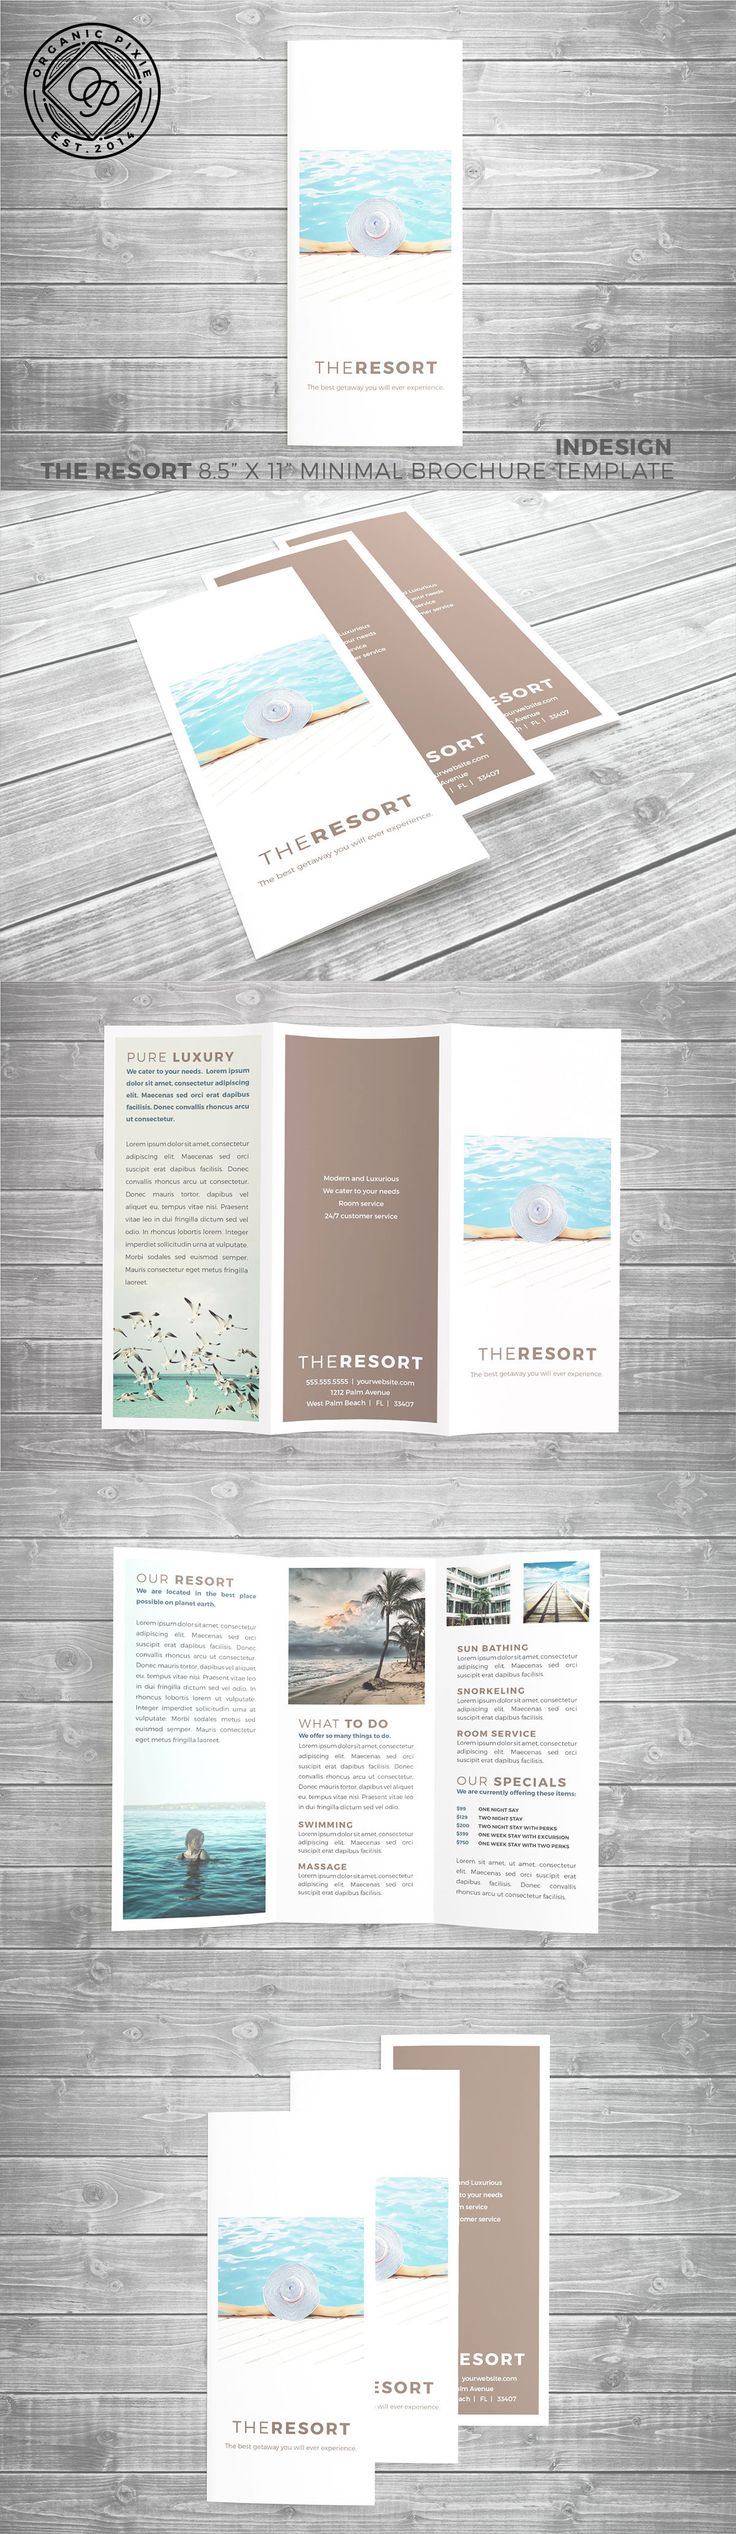 This is an easy to use turn key vertical brochure design template in InDesign…